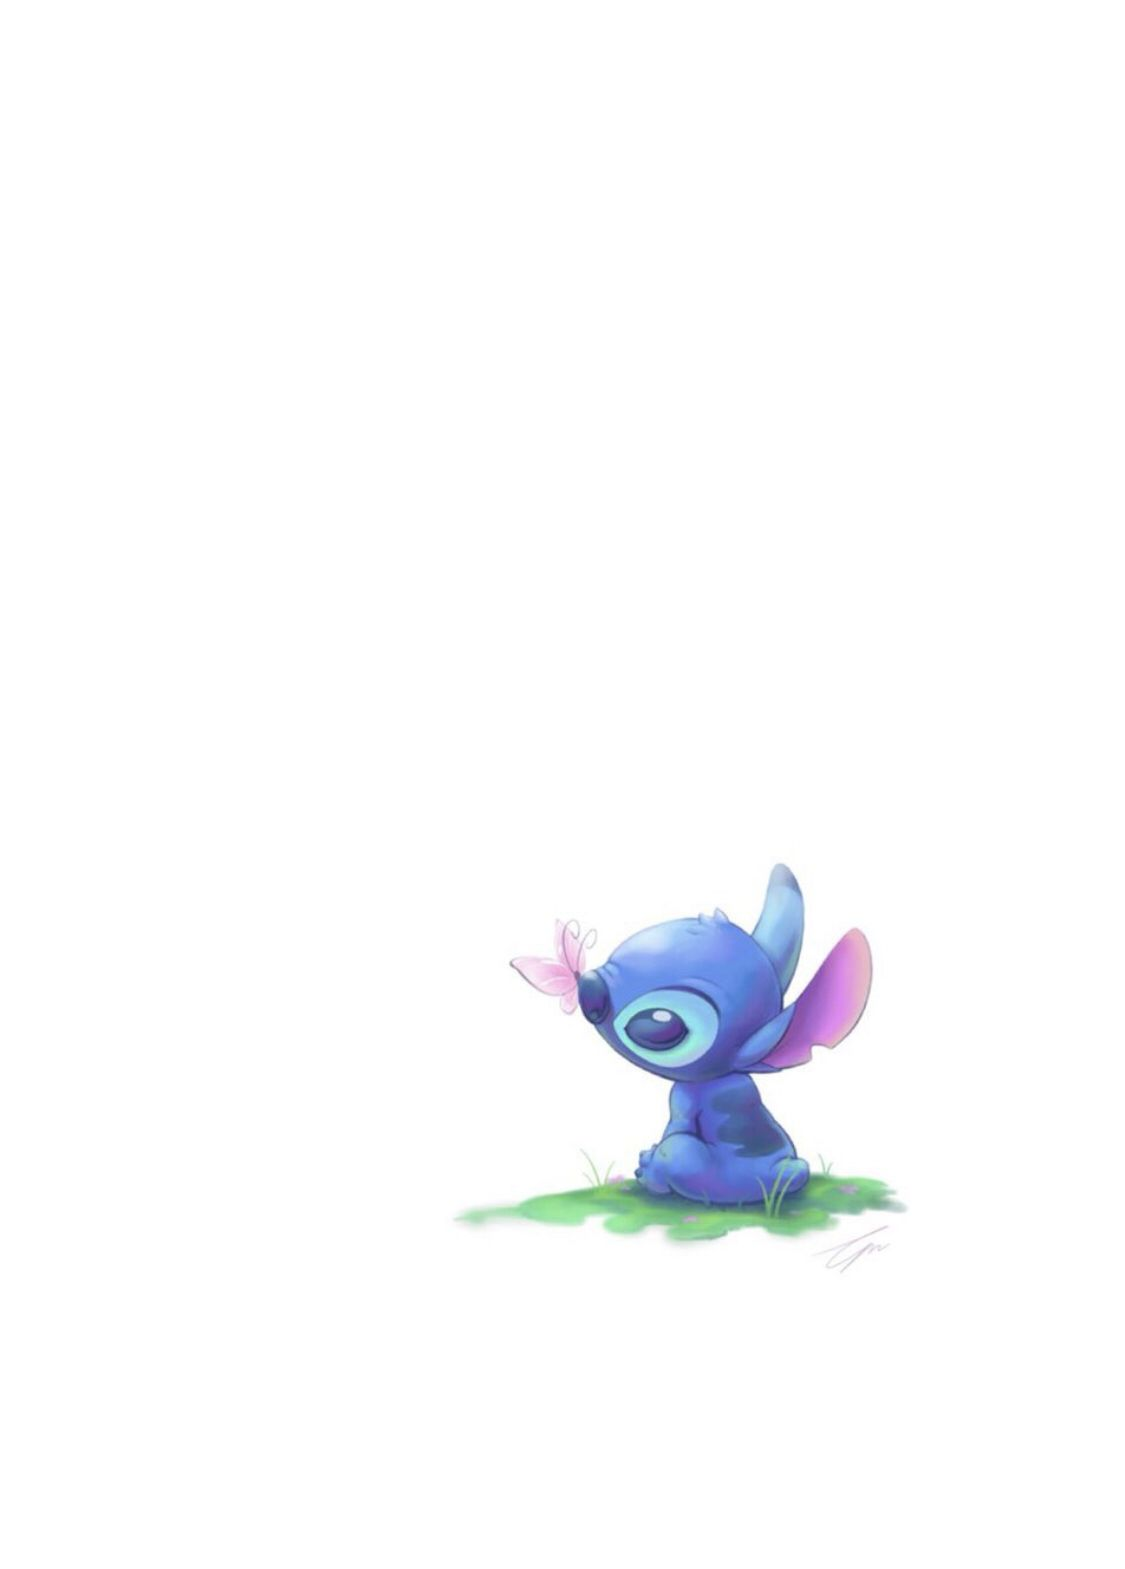 liloandstitch stitch wallpaper Cute wallpapers for